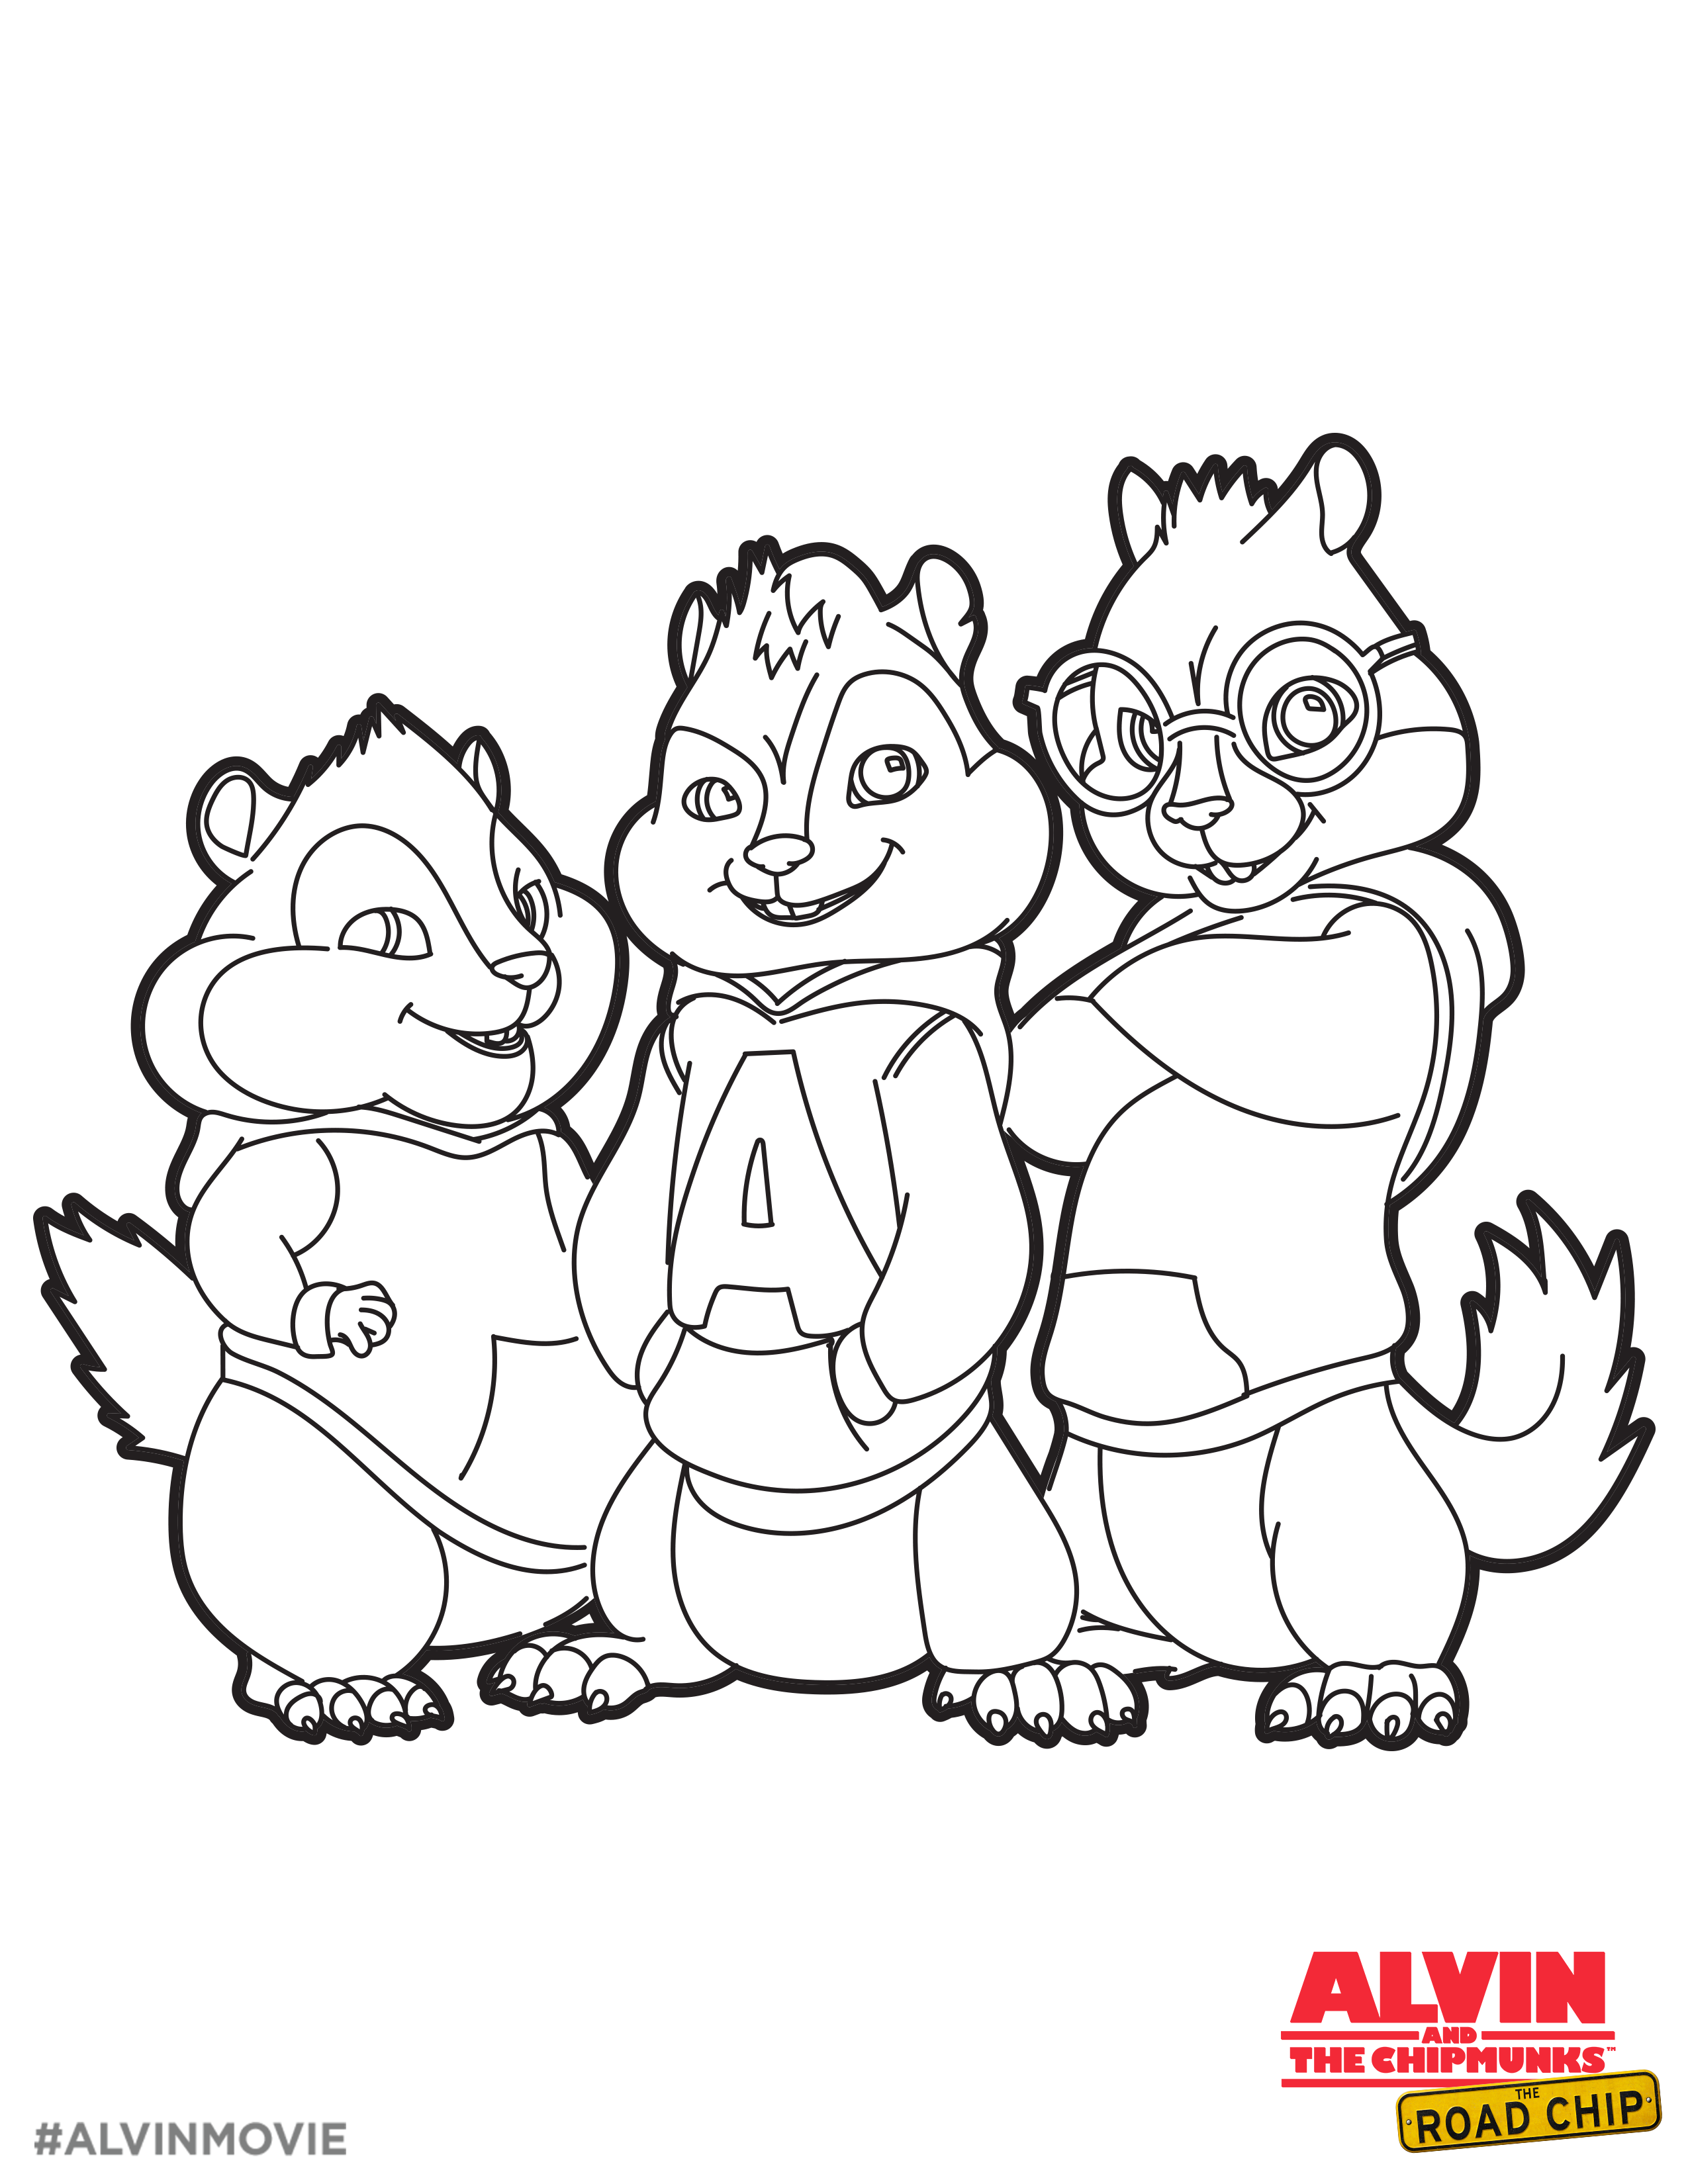 alvin and the chipmunks free coloring printable